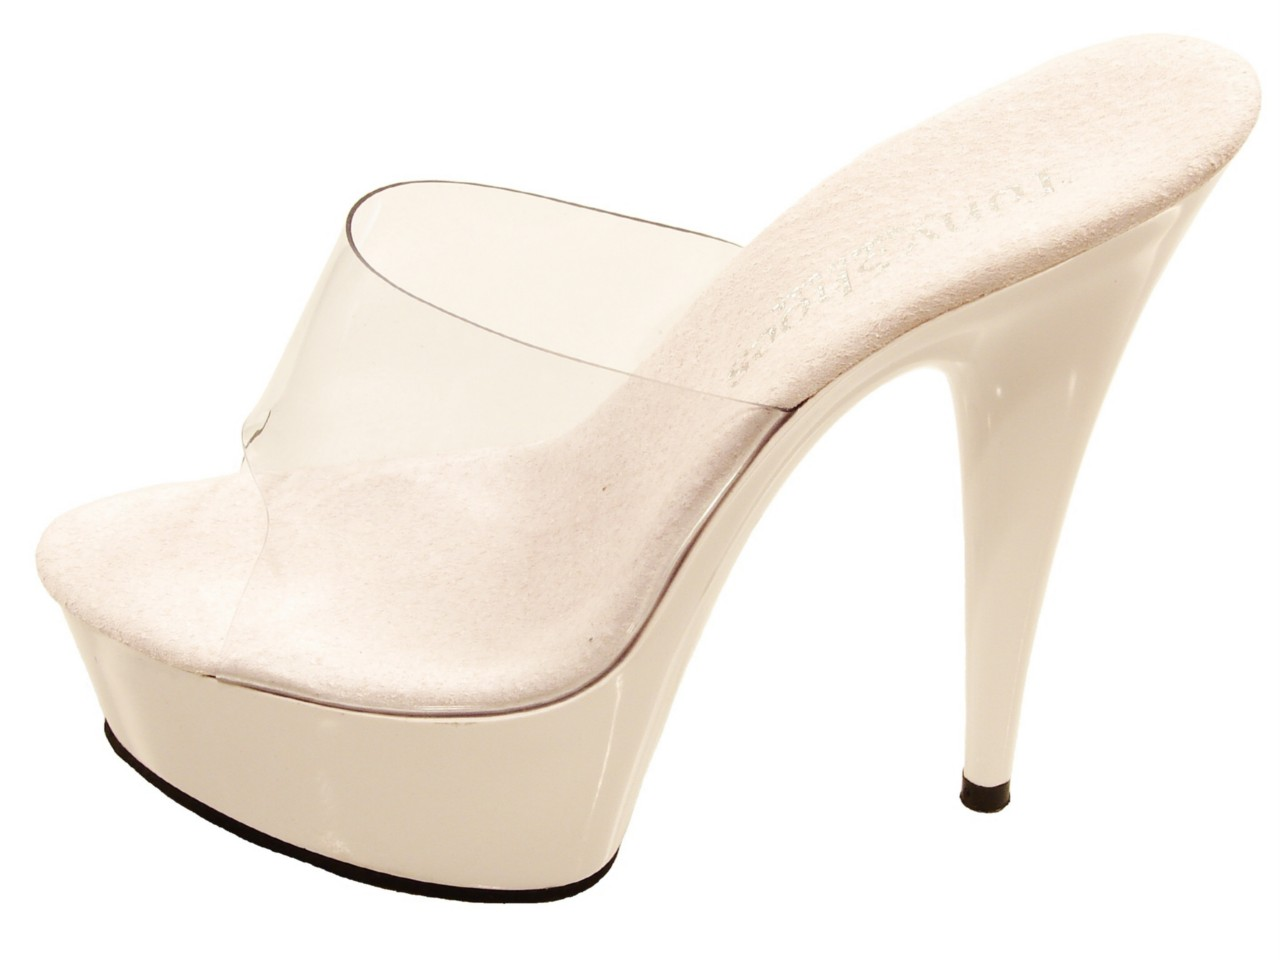 tony shoes 106 clear white 6 quot high heel platform slides ebay